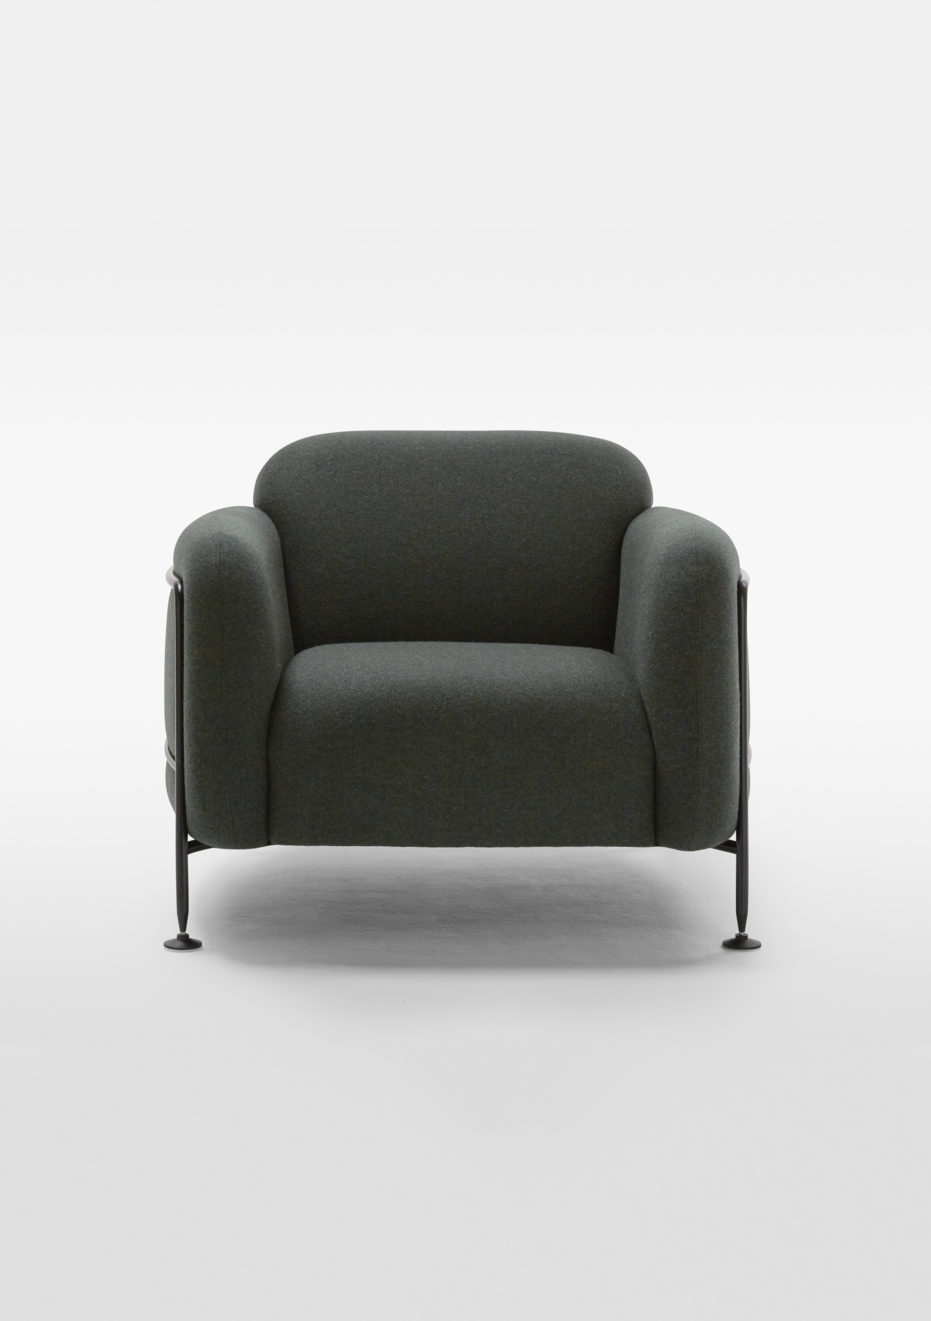 Mega Armchair / MASSPRODUCTIONS Product Link SPEC SHEET - Inquire within - info@smlpond.com